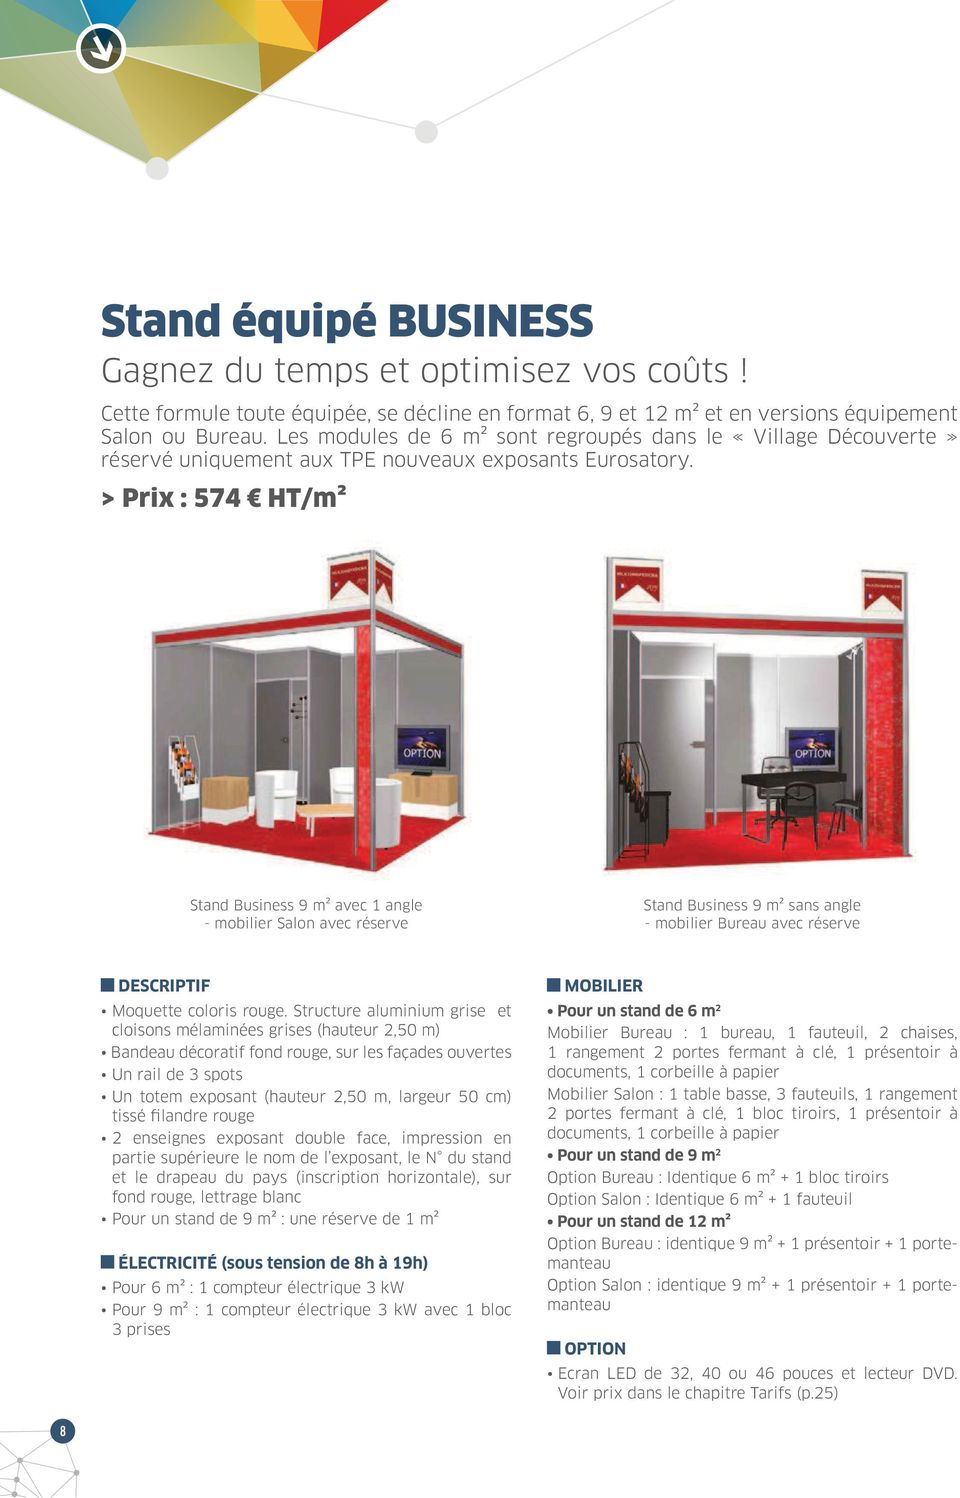 > Prix : 574 HT/m² Stand Business 9 m² avec 1 angle - mobilier Salon avec réserve Stand Business 9 m² sans angle - mobilier Bureau avec réserve Moquette coloris rouge.